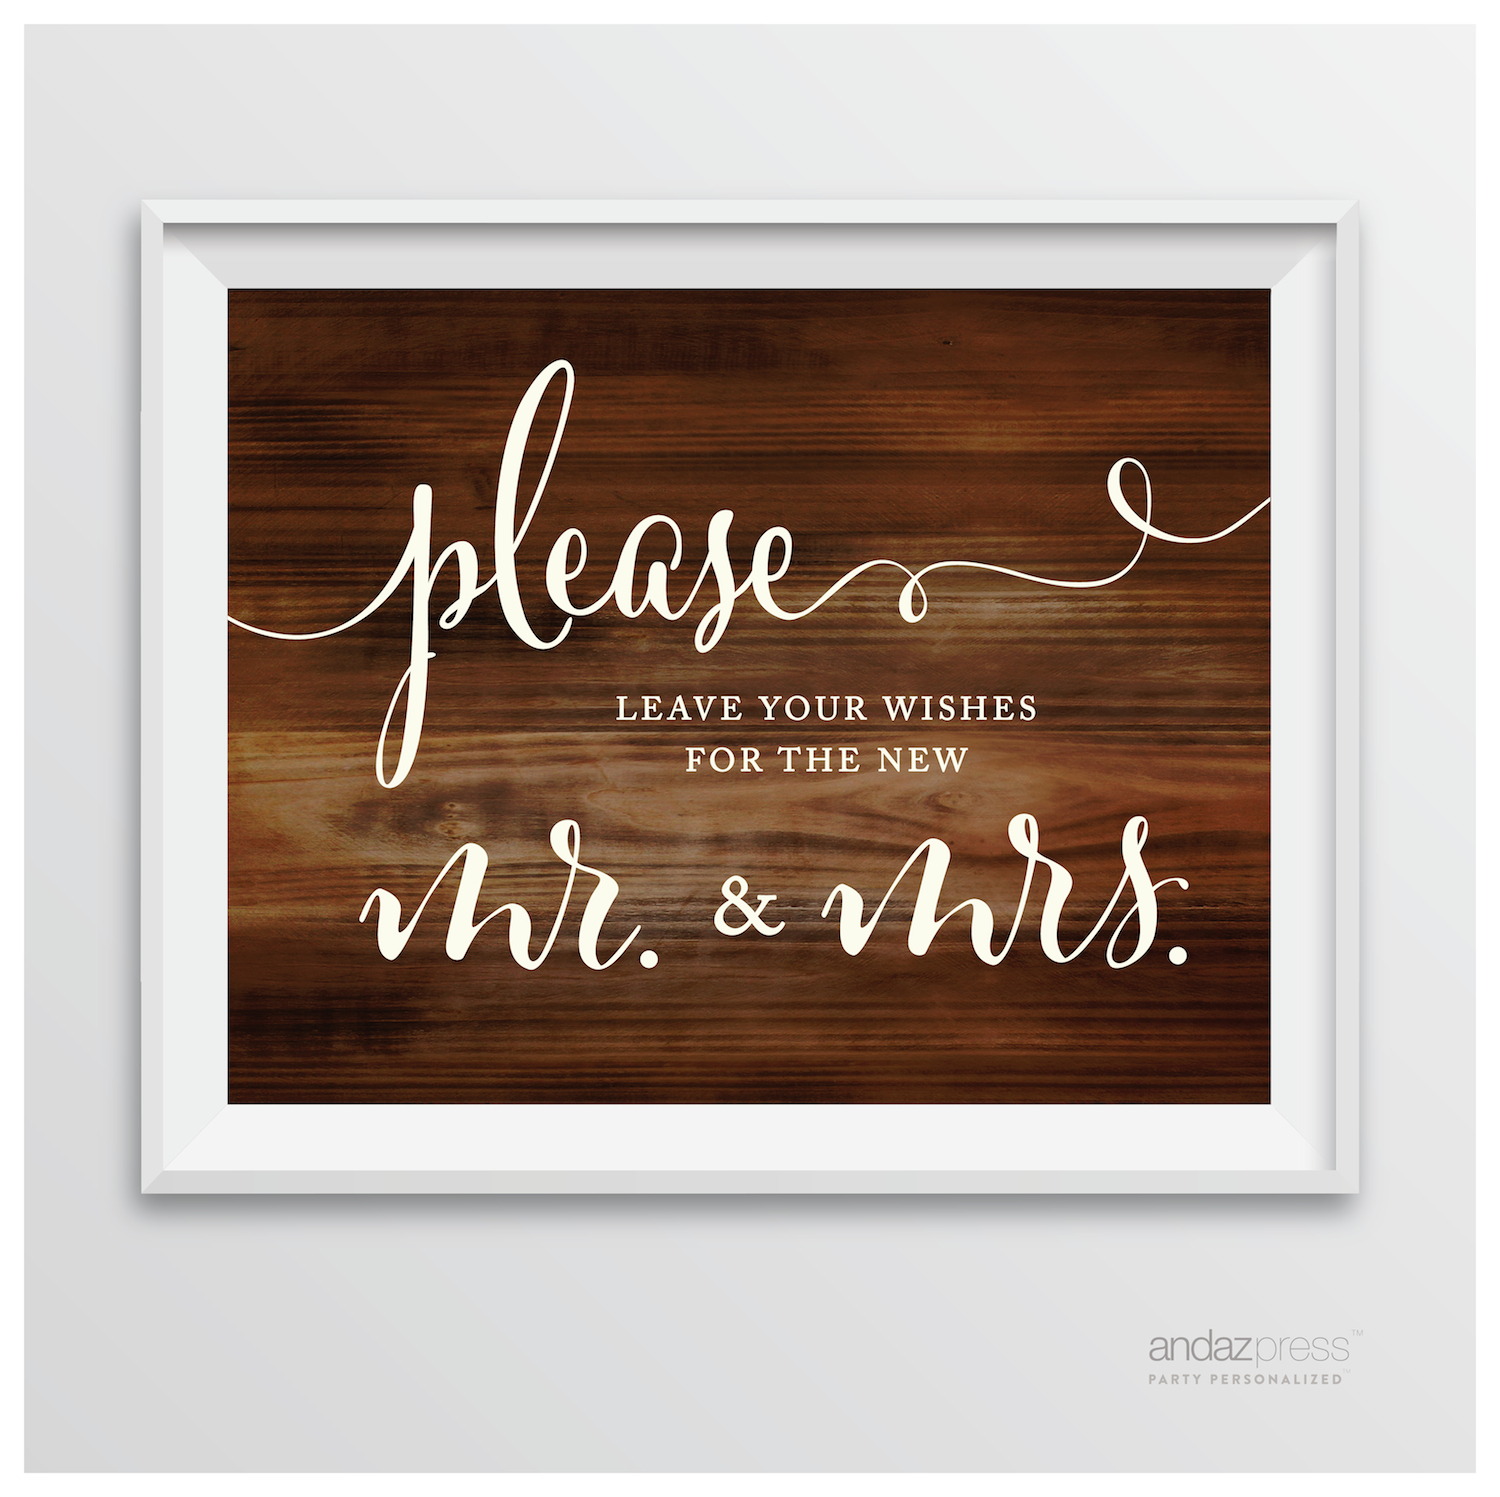 Leave Your Wishes For New Mr. & Mrs. Rustic Wood Wedding Party Signs